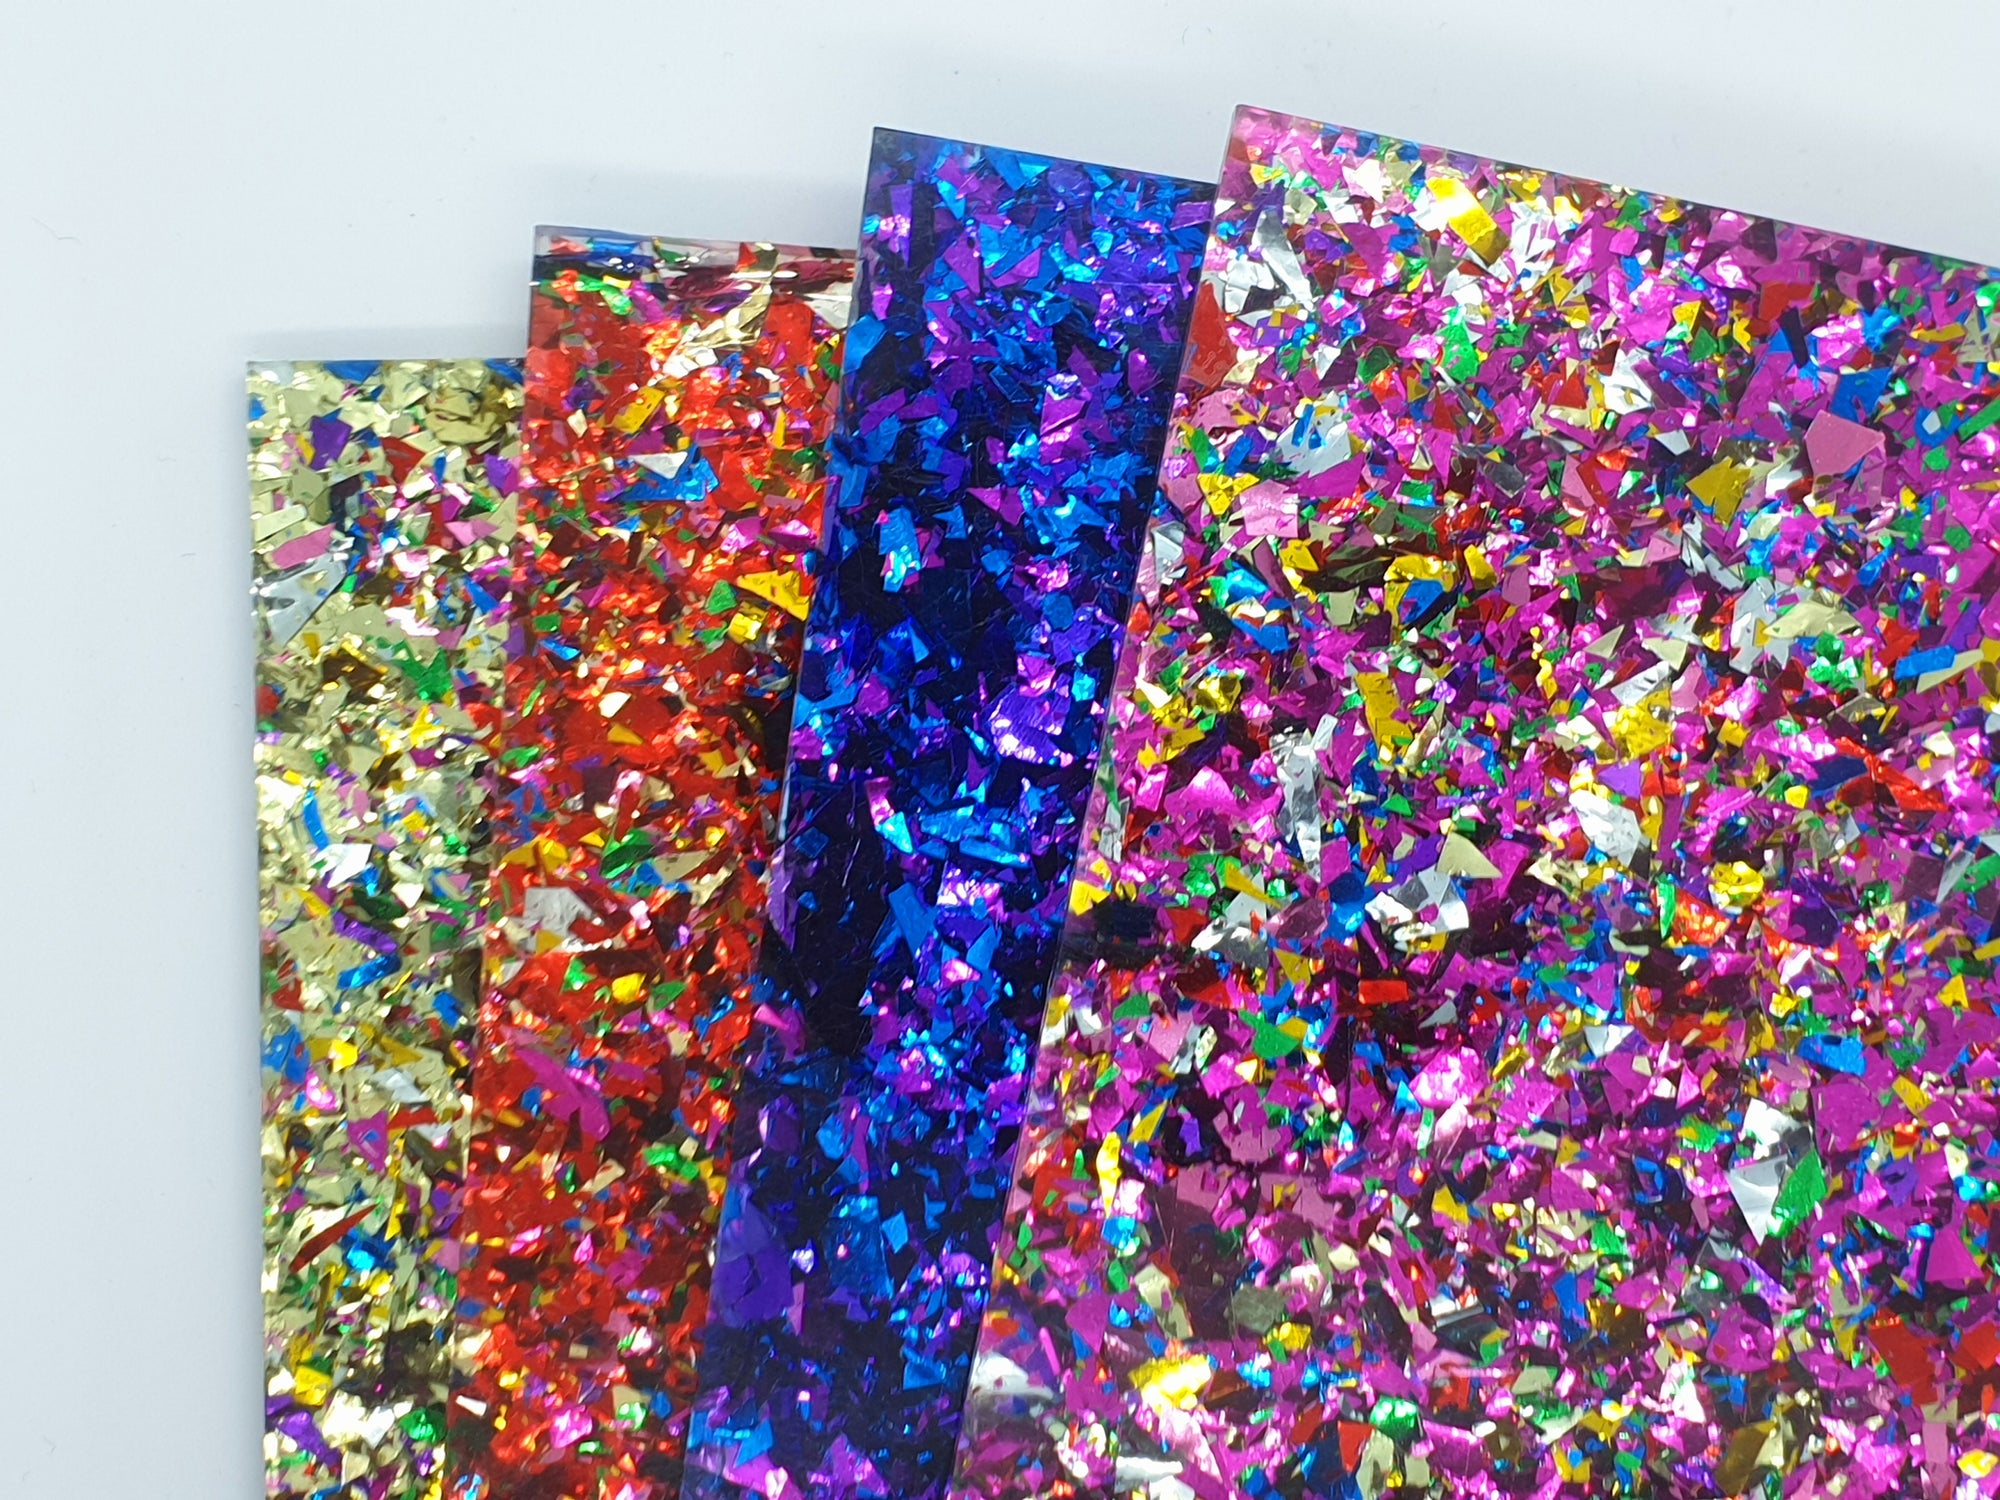 NEW Acrylics in Store now - Frost, Party Glitter, Bubble glitter and more!